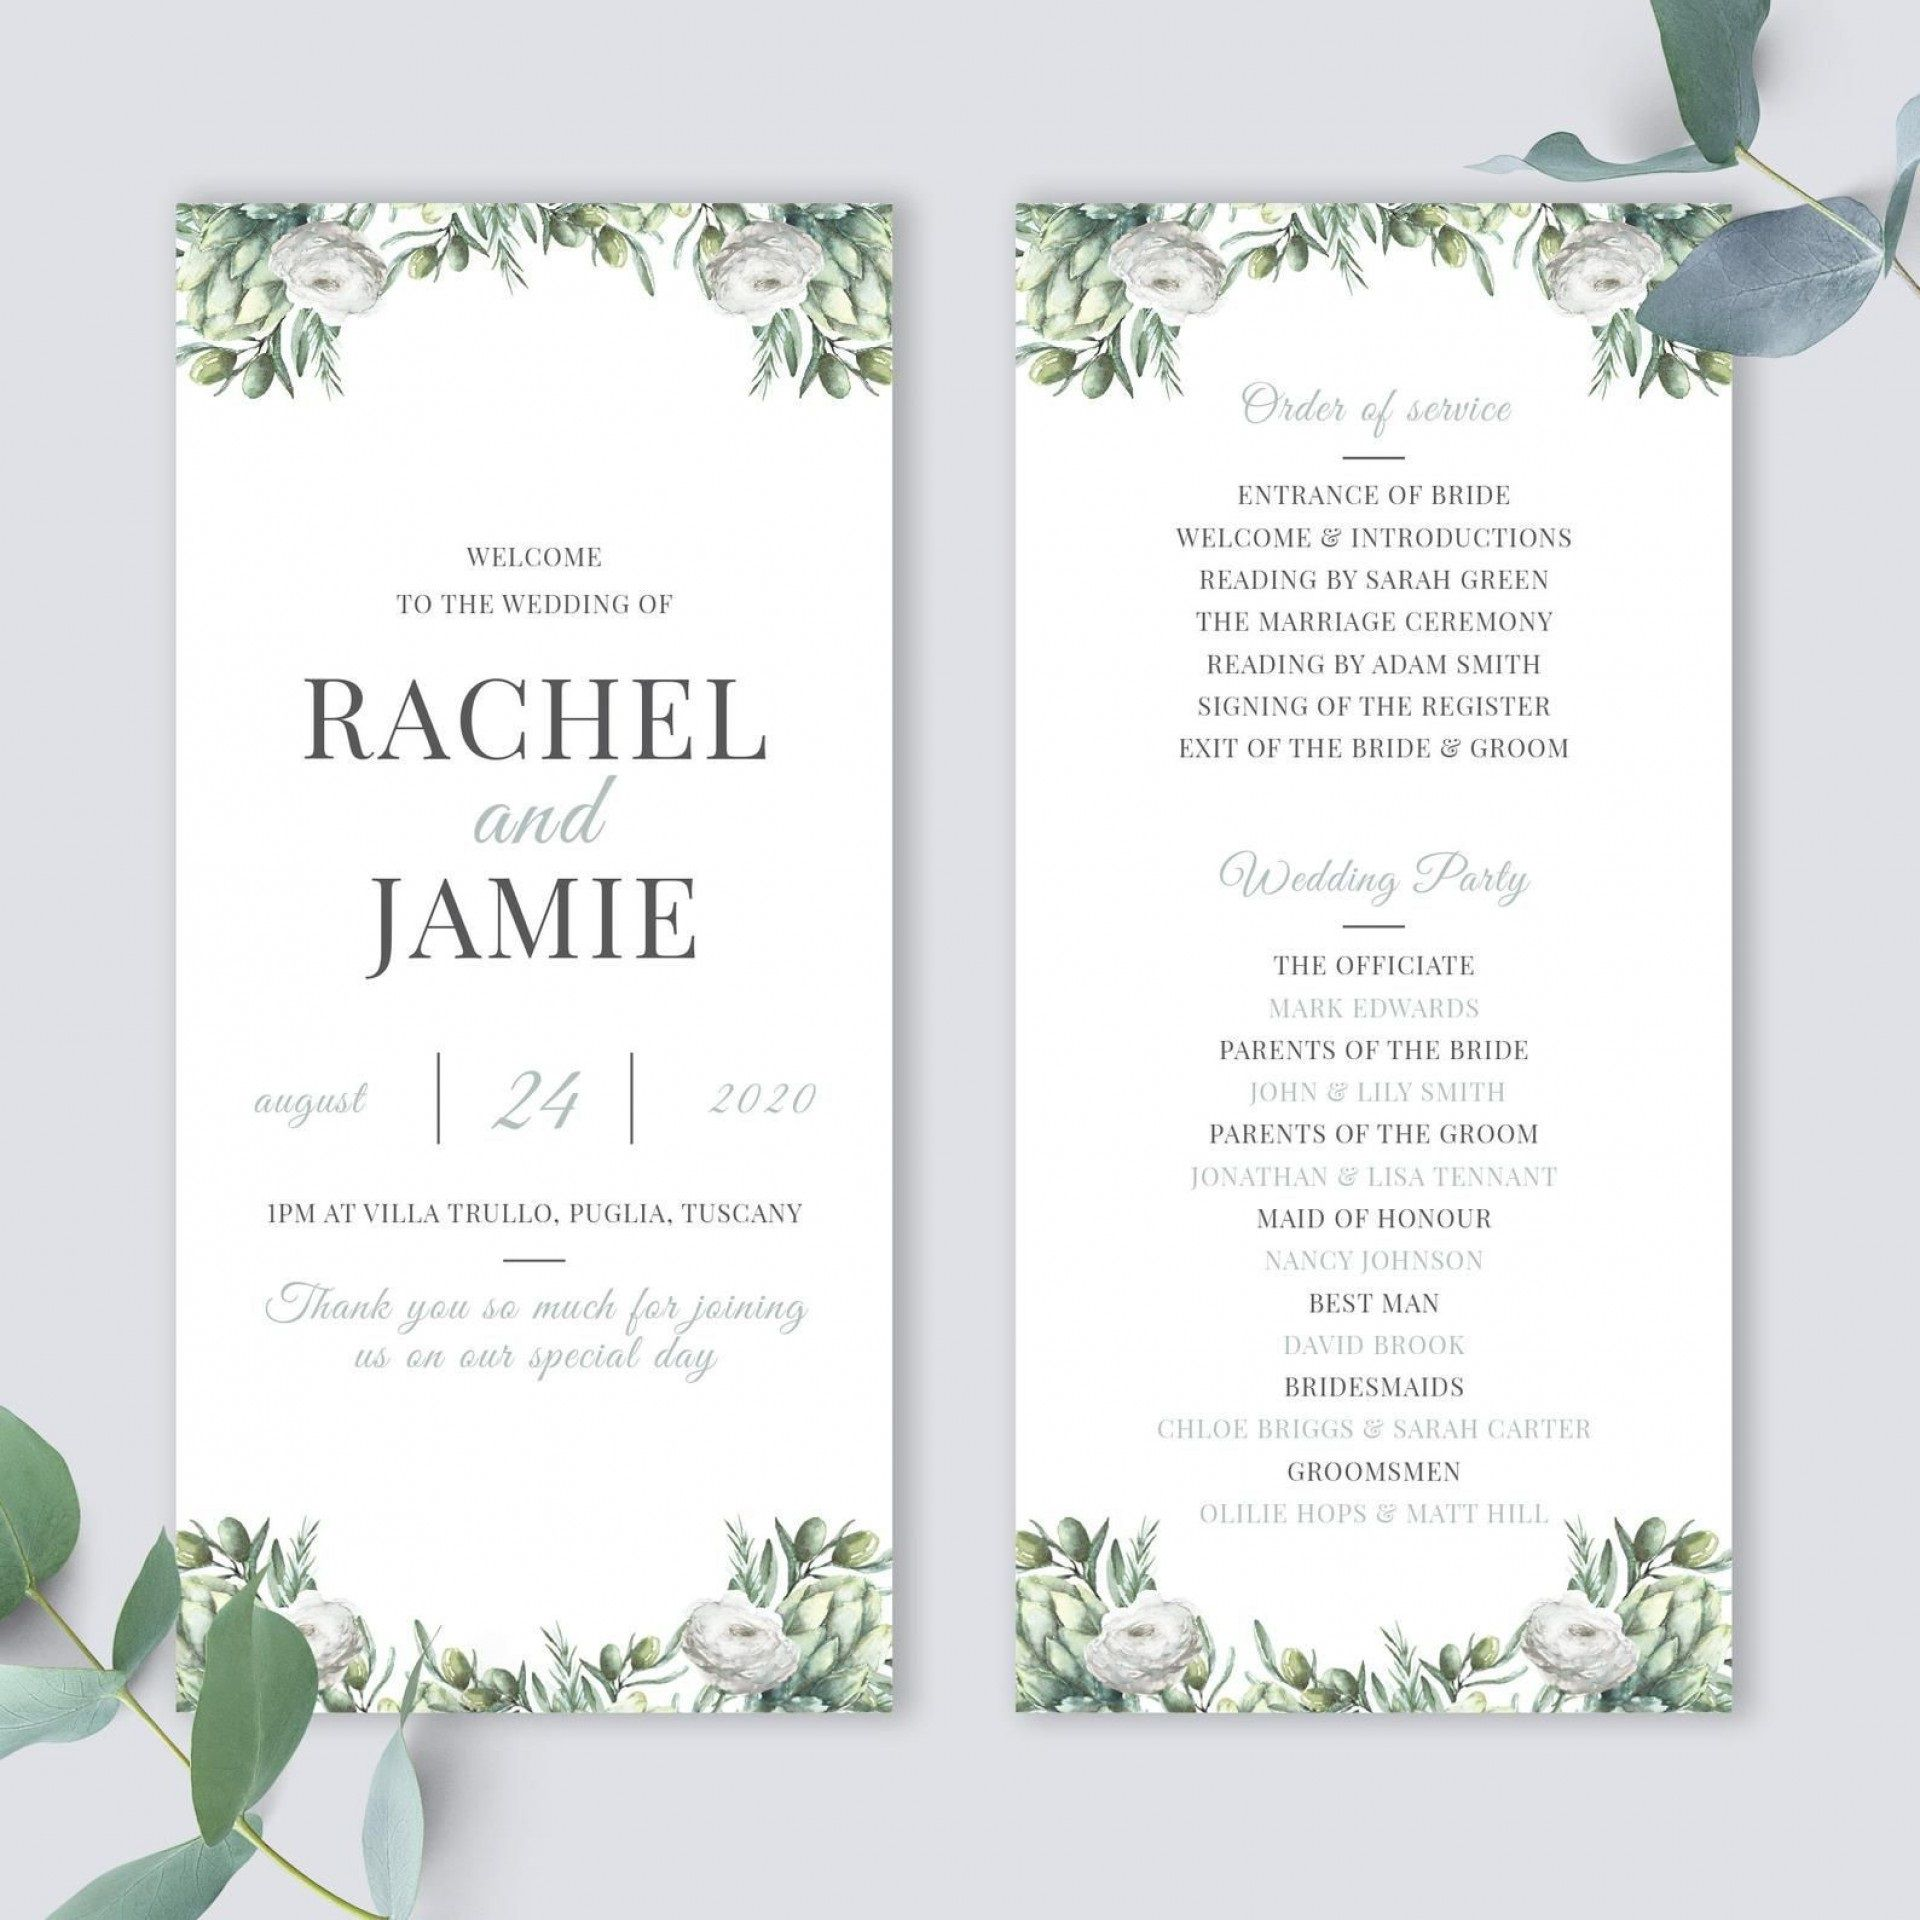 009 Archaicawful Church Wedding Order Of Service Template Uk Idea Full